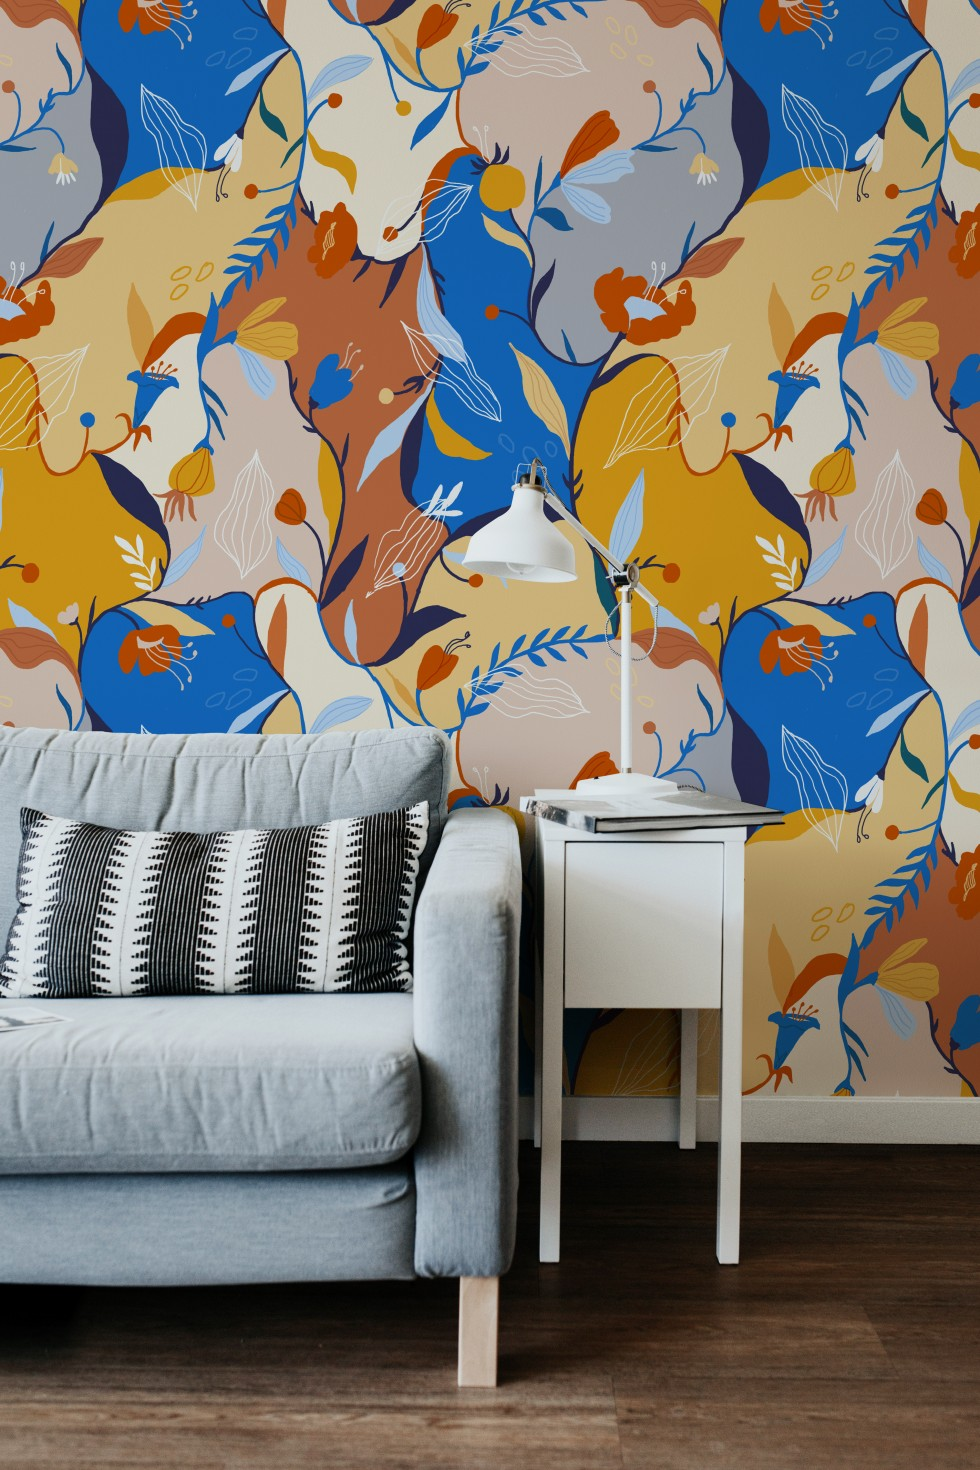 A colorful patterns full of birds and flowers are mocked on ceramics and wallpaper.